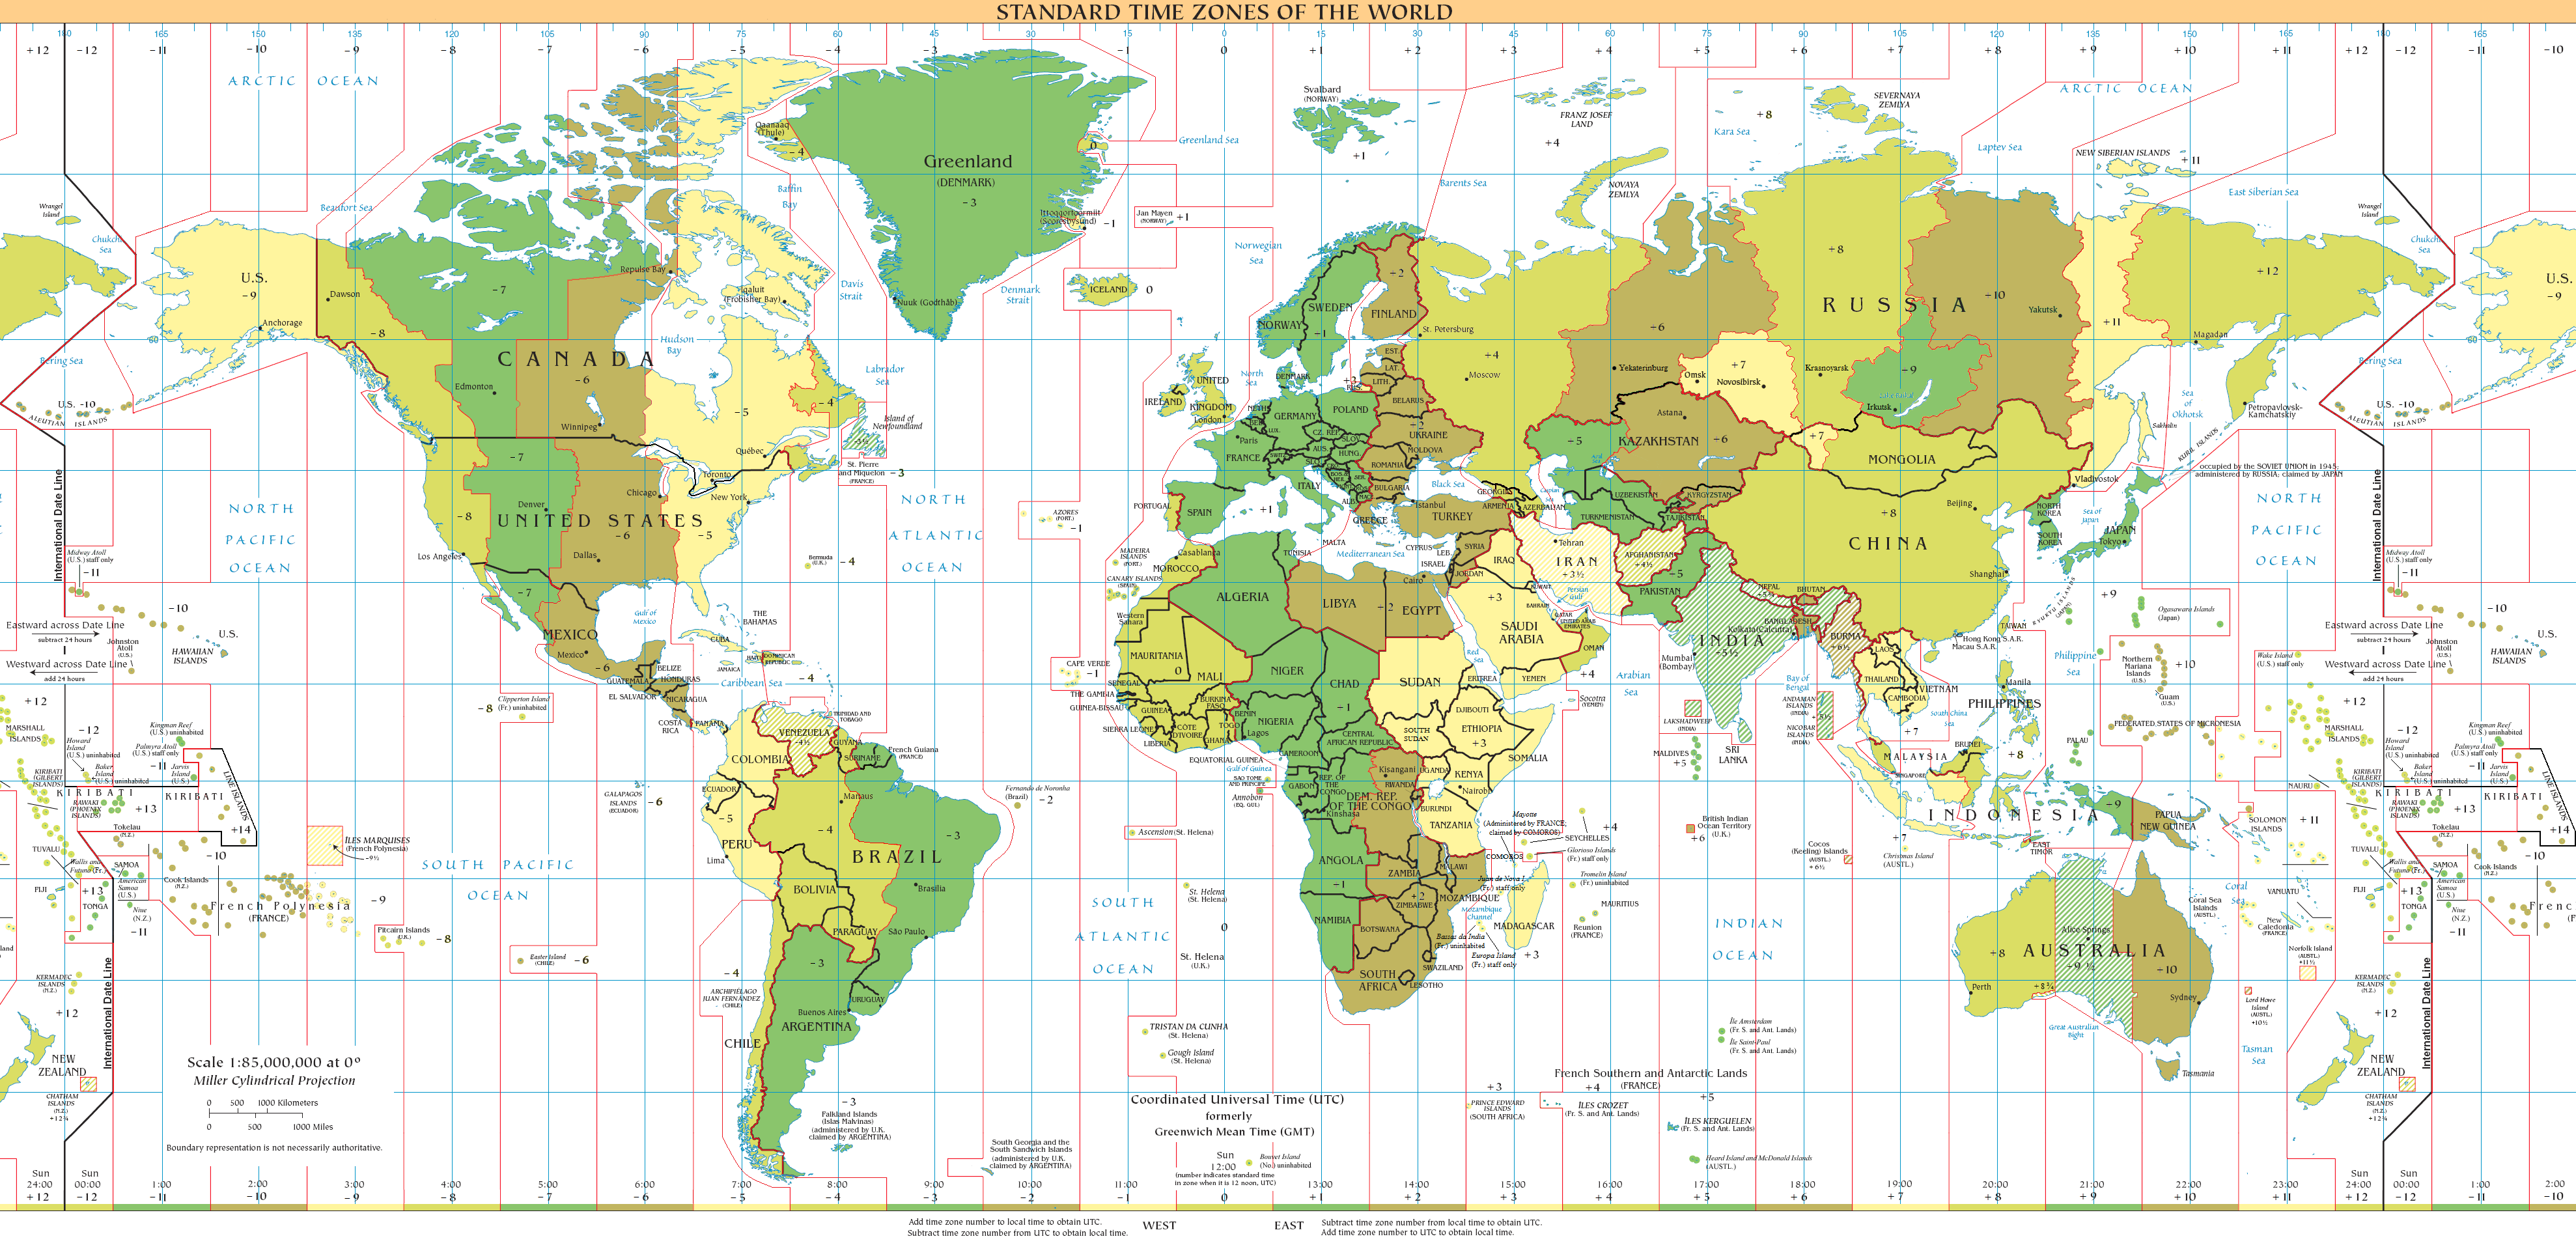 garmin maps south africa with Timezone Gap on Roaring 20s Fashion For Women as well Timezone Gap moreover World Map From Space furthermore Time Zone Map World likewise Map Of Europe Mountain Ranges.